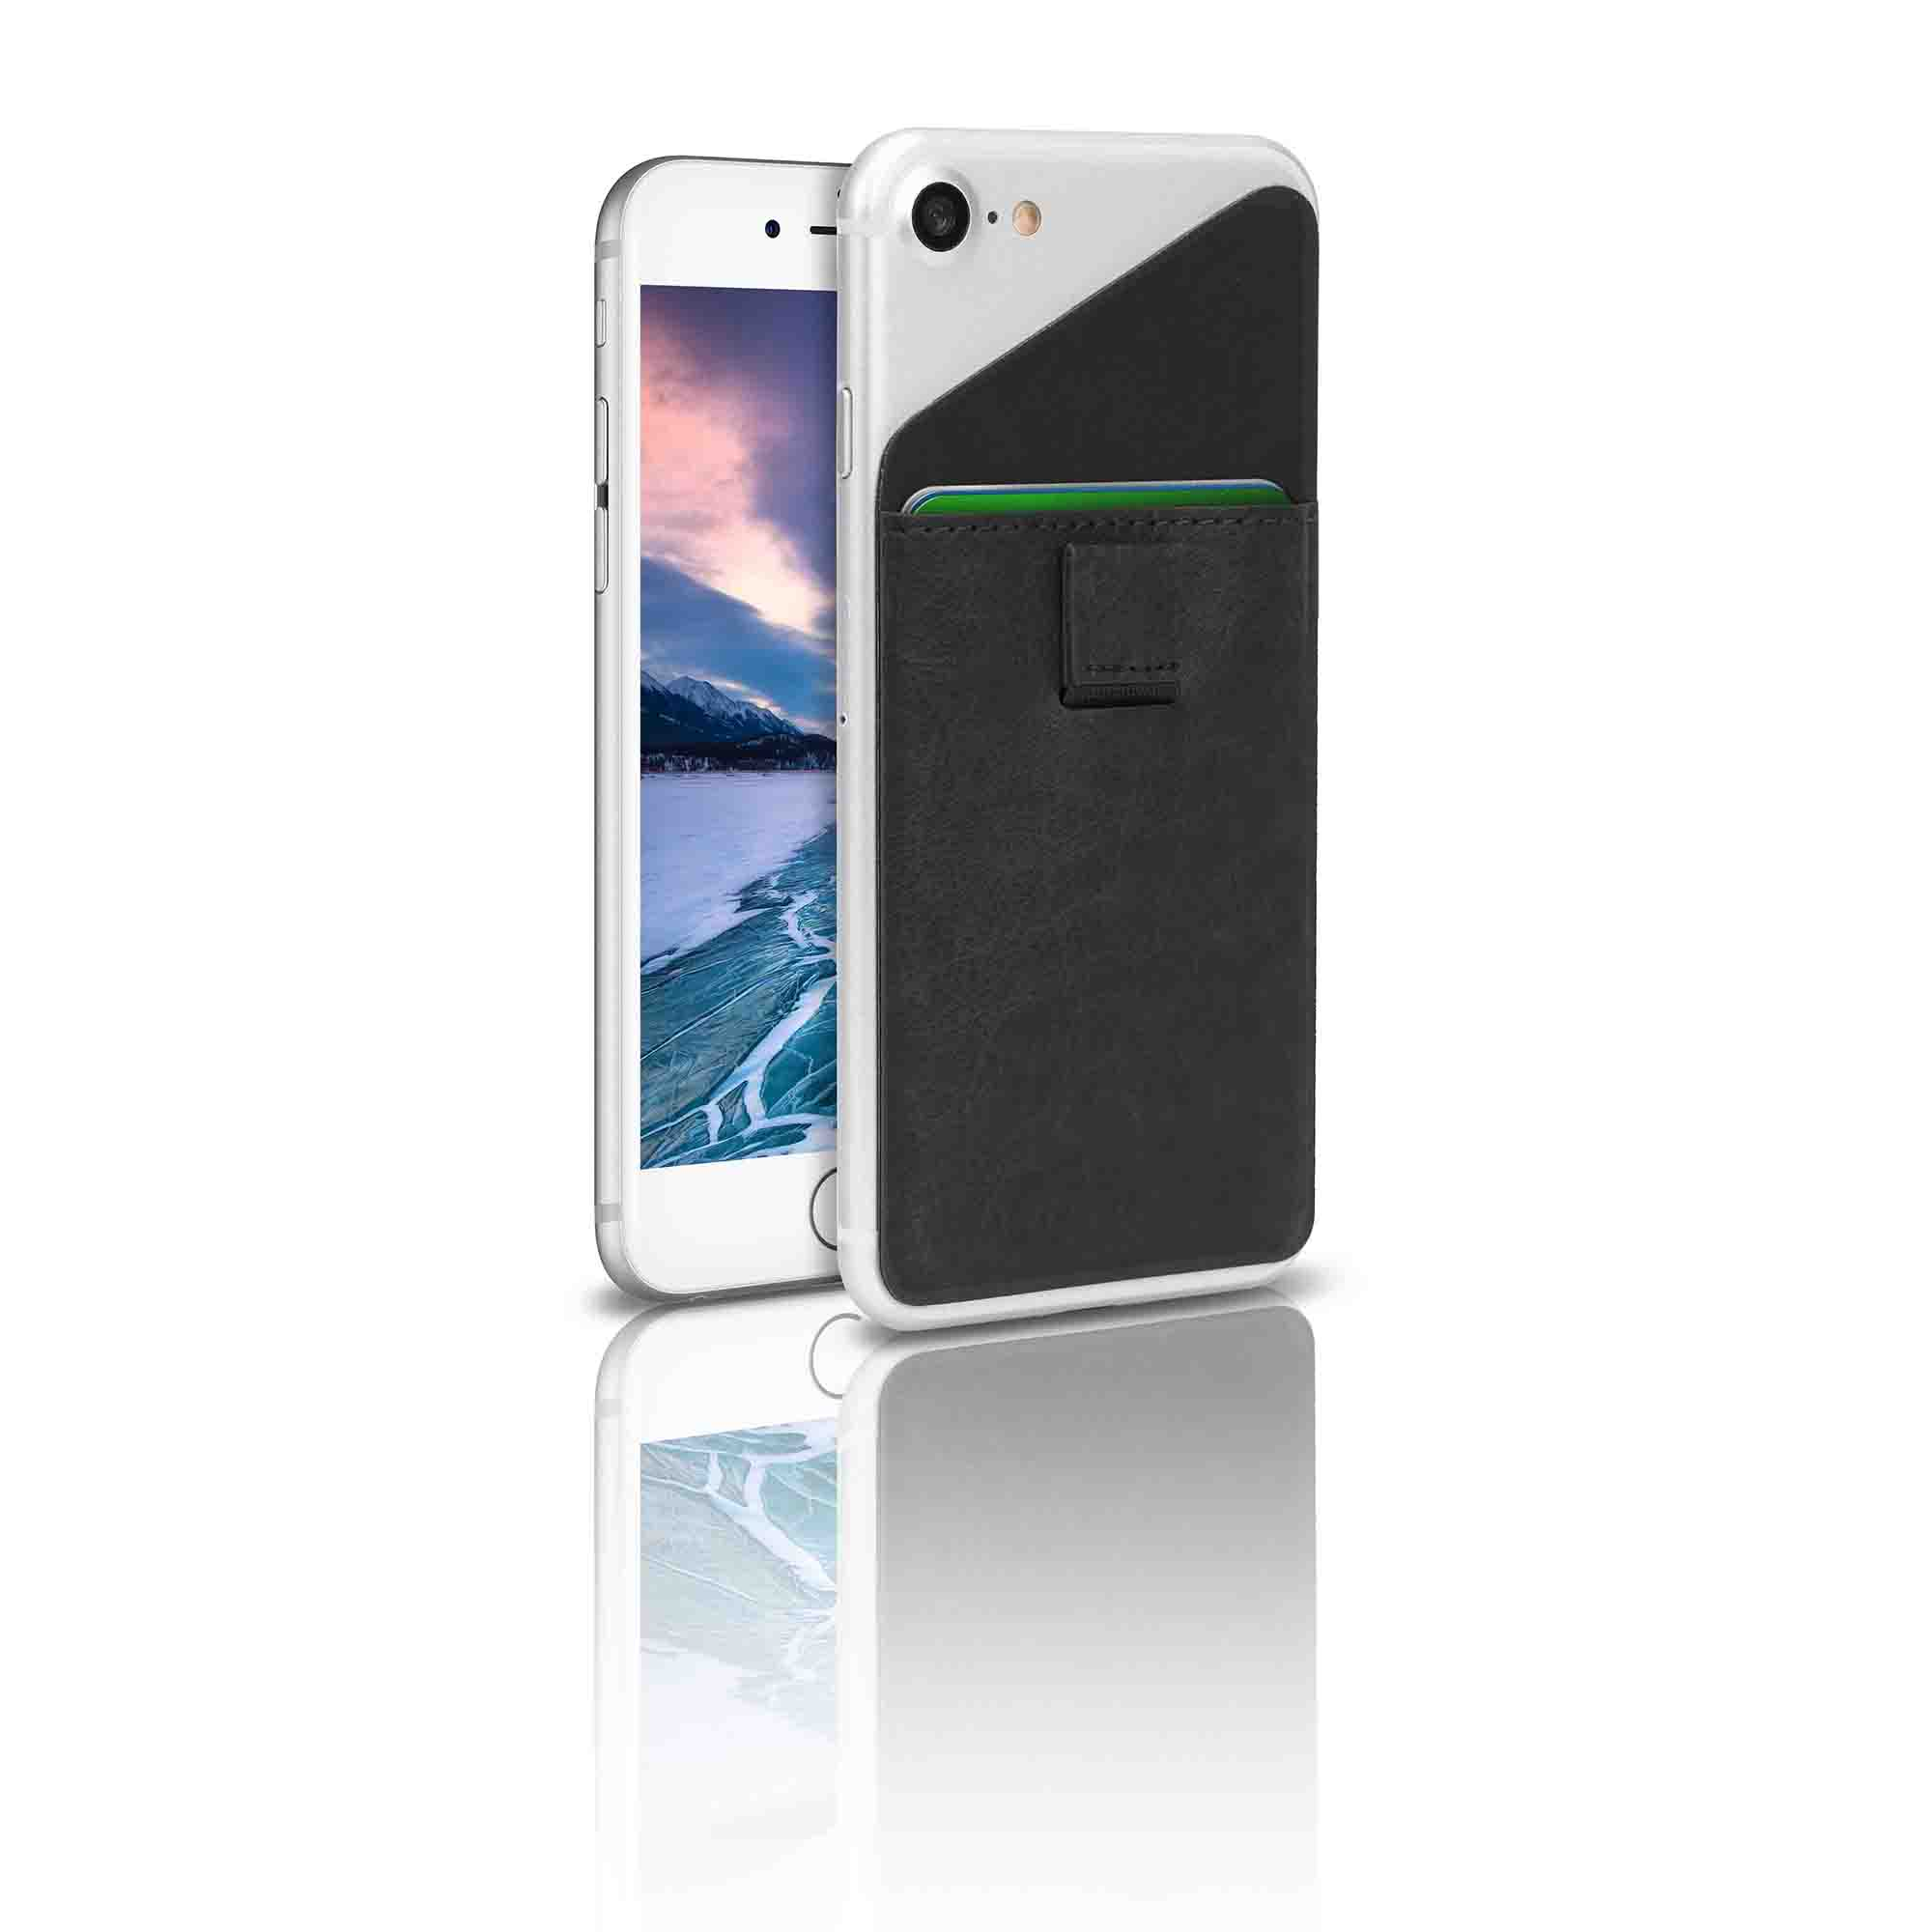 Phone Accessory Blackweb Universal Phone Accessory Card Wallet Stick On The Back Of Your Phone To Securely Hold Up To 3 Cards